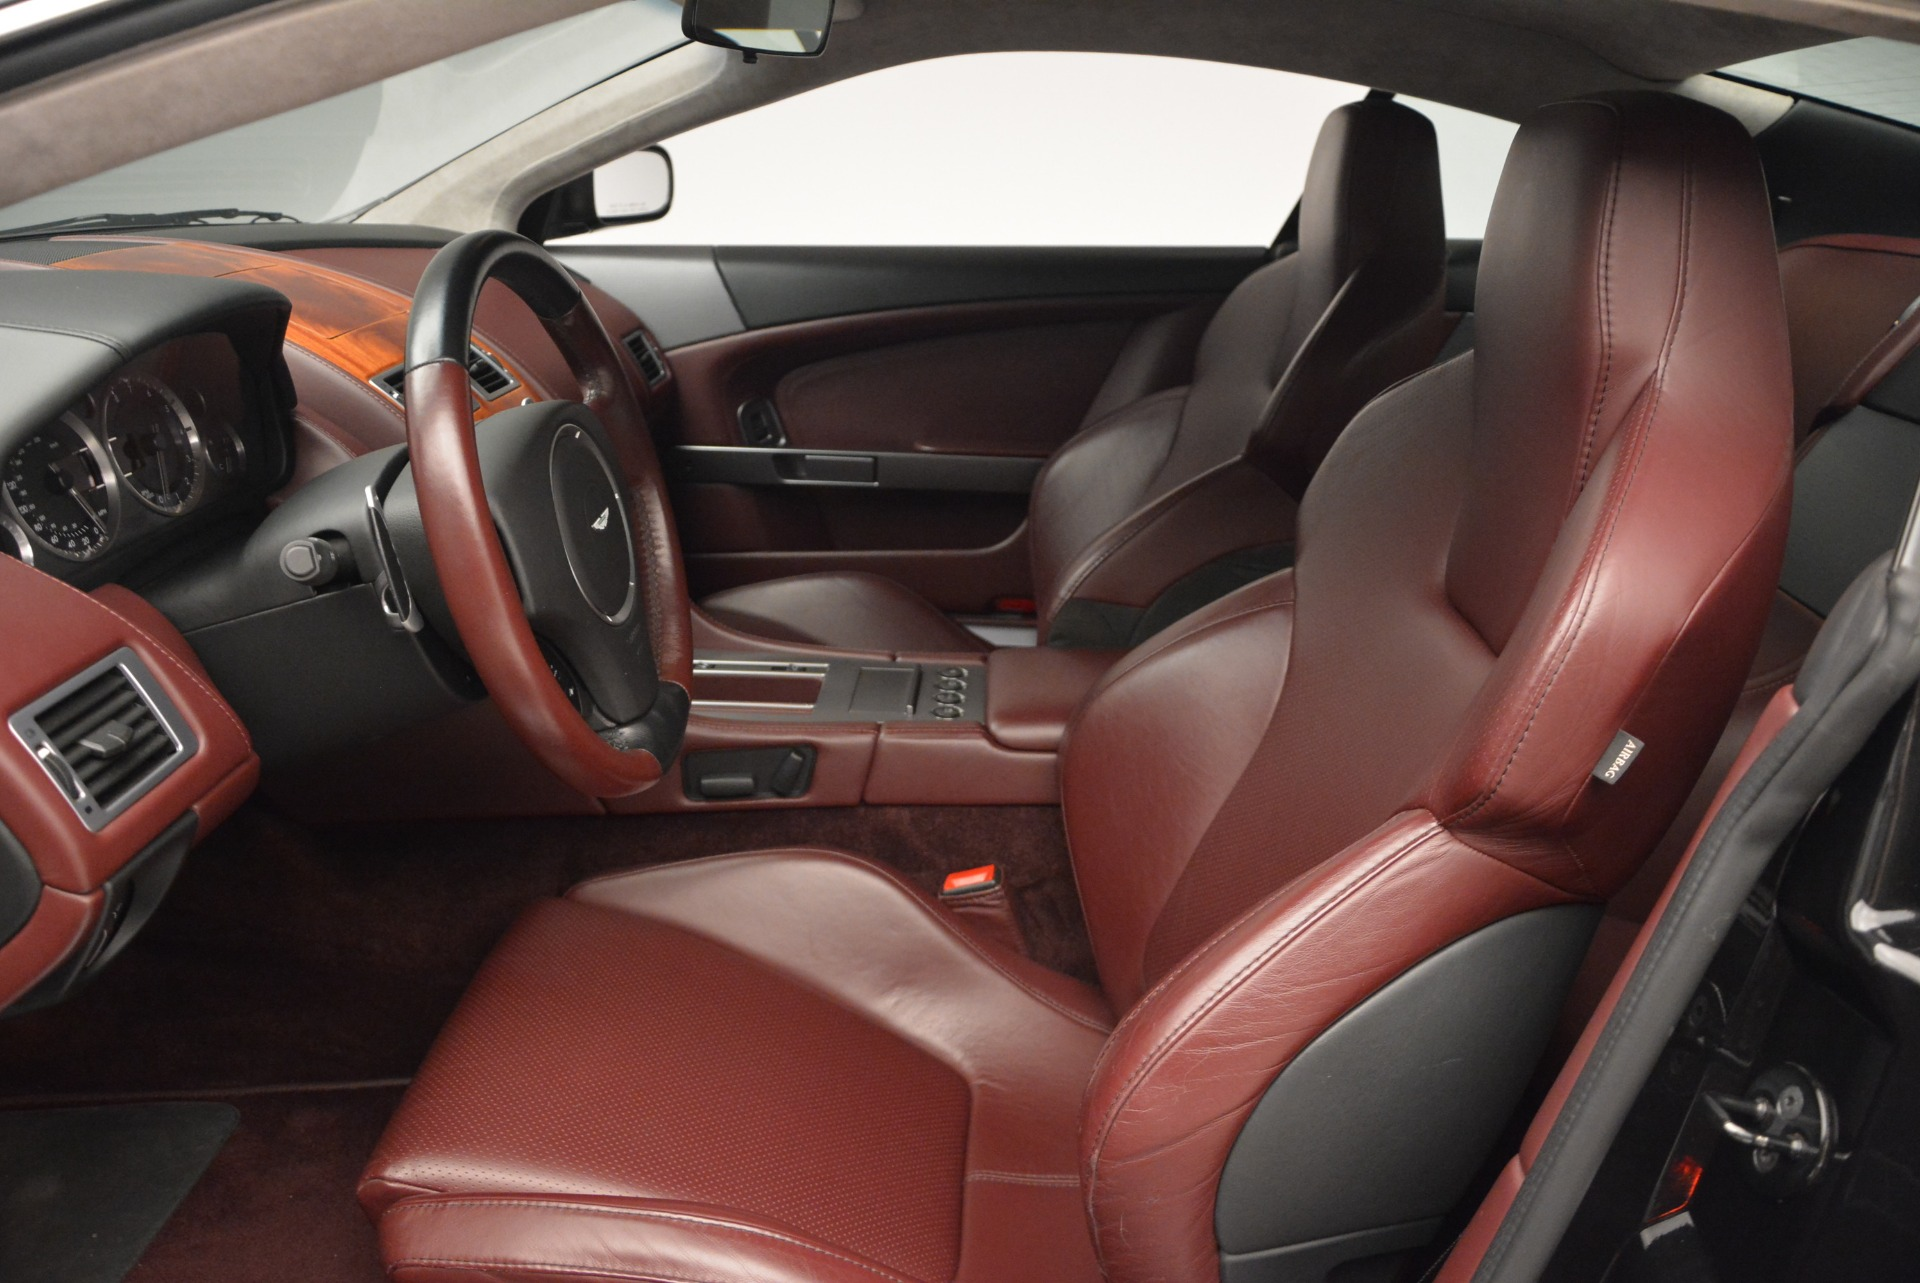 Used 2006 Aston Martin DB9 Coupe For Sale In Greenwich, CT 2832_p13